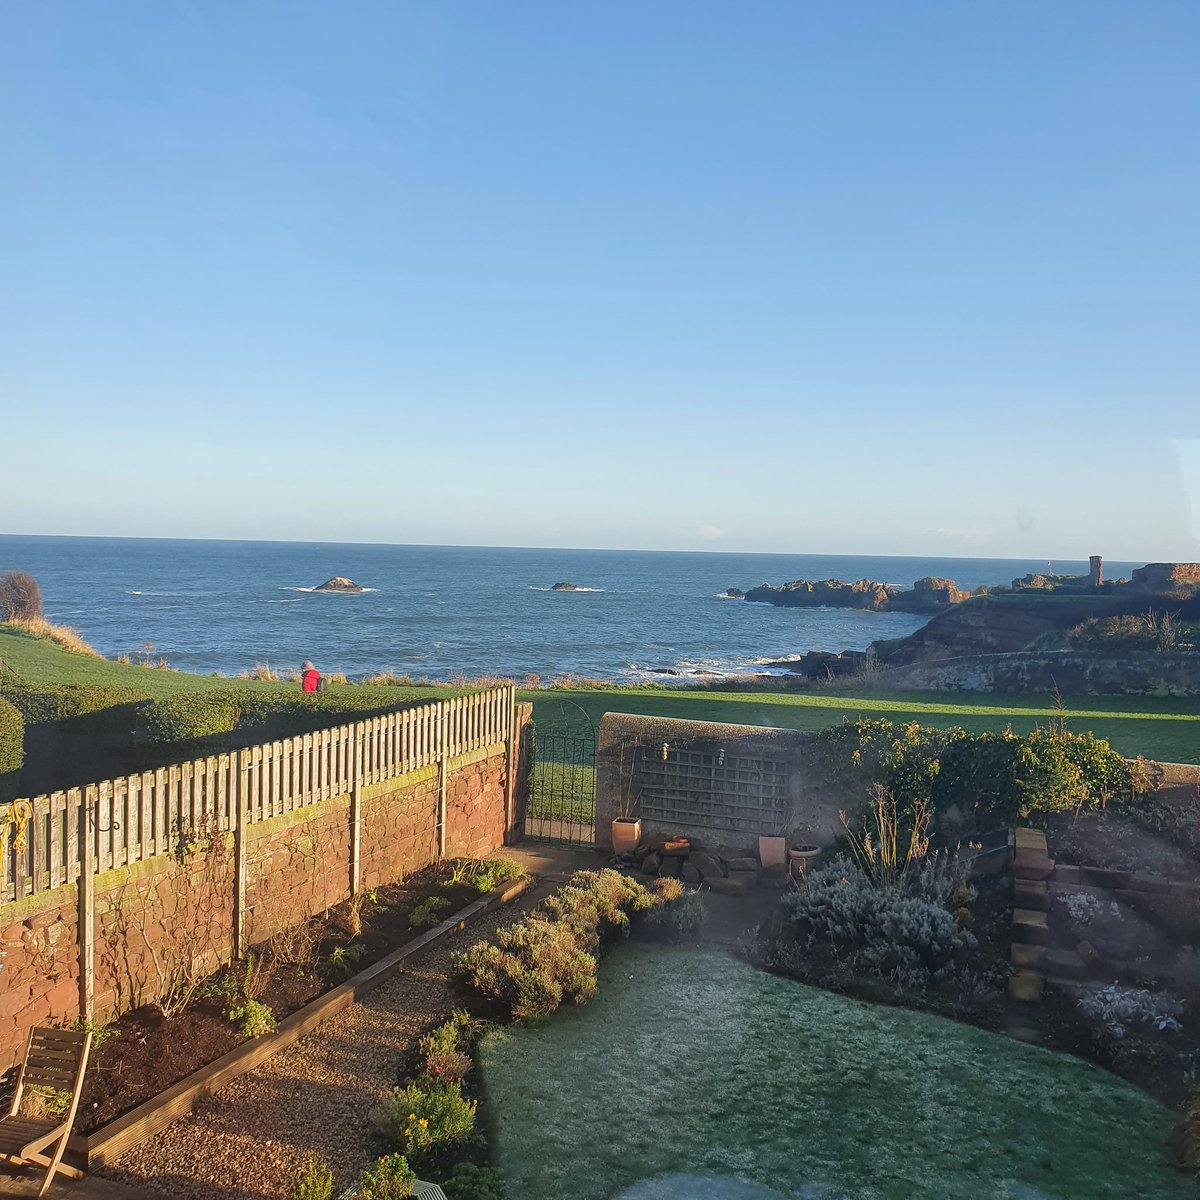 Oh #Dunbar ❤  You are so lovely.    #workingfromhome #EastLothian #seaside #Scotland